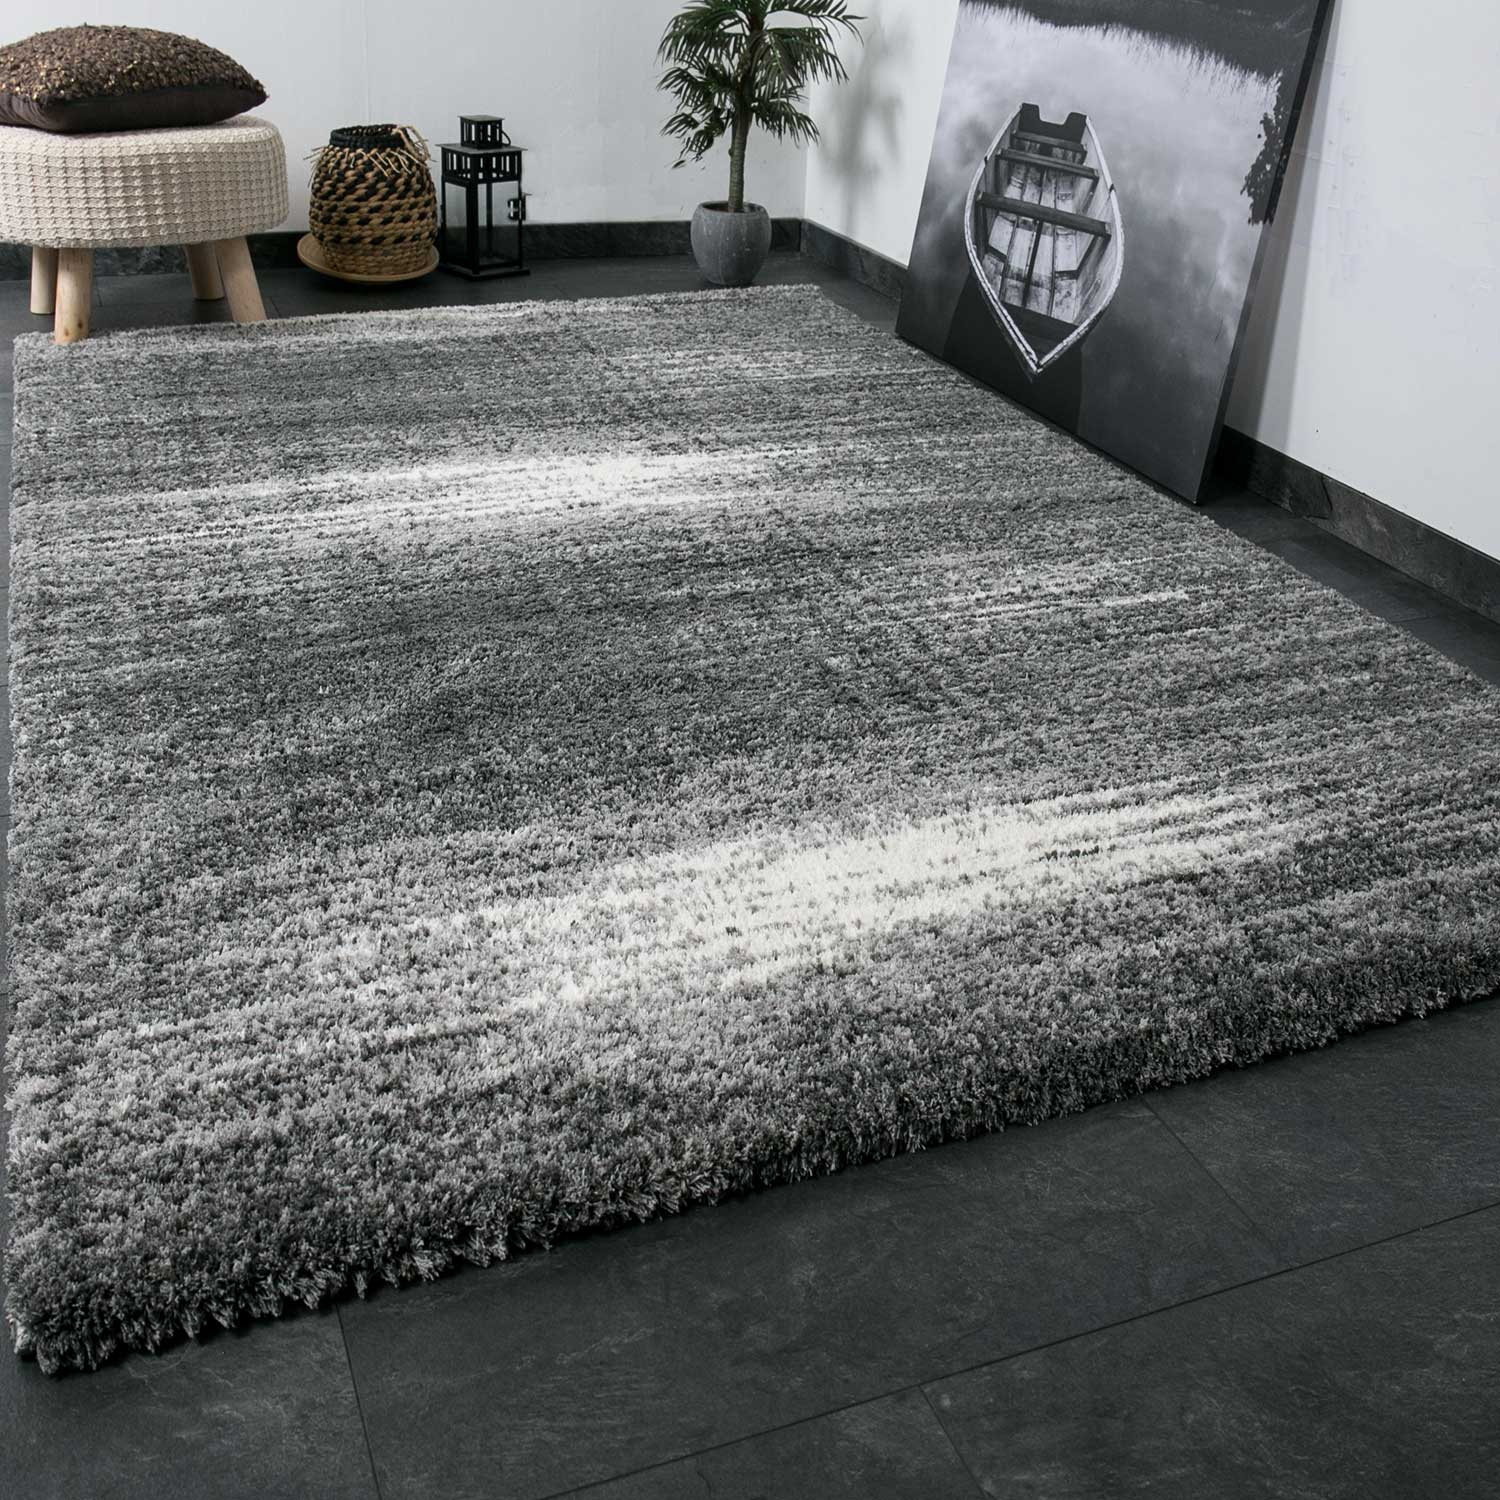 shaggy teppich extra flauschig dicht gewebt hochflor farbe. Black Bedroom Furniture Sets. Home Design Ideas